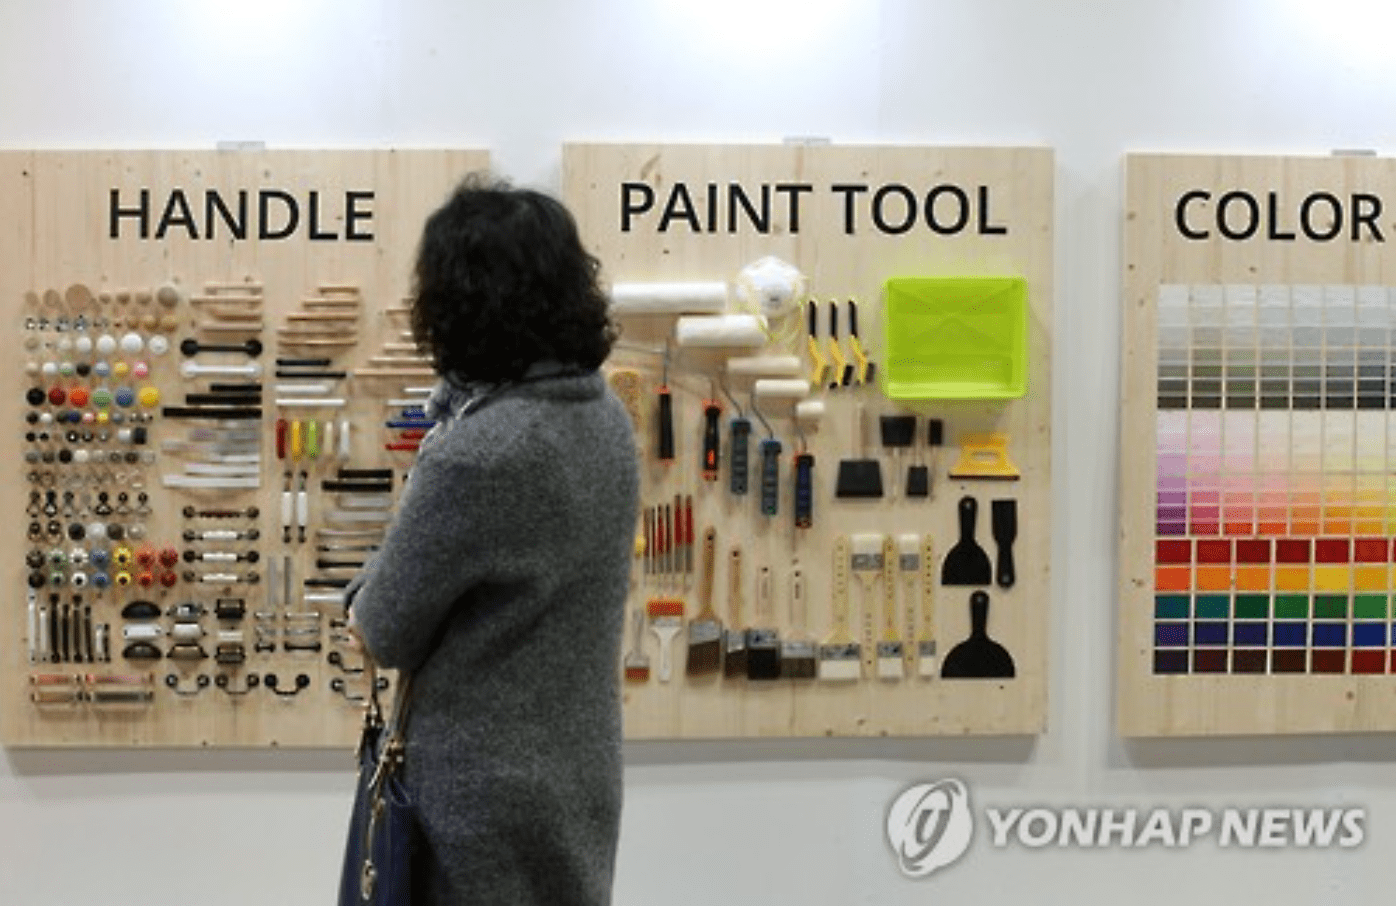 Big Data Shows Growing Interest in DIY House Interior Design   Be     DIY interior design tools at the DIY   Reform Show hosted at COEX in 2016